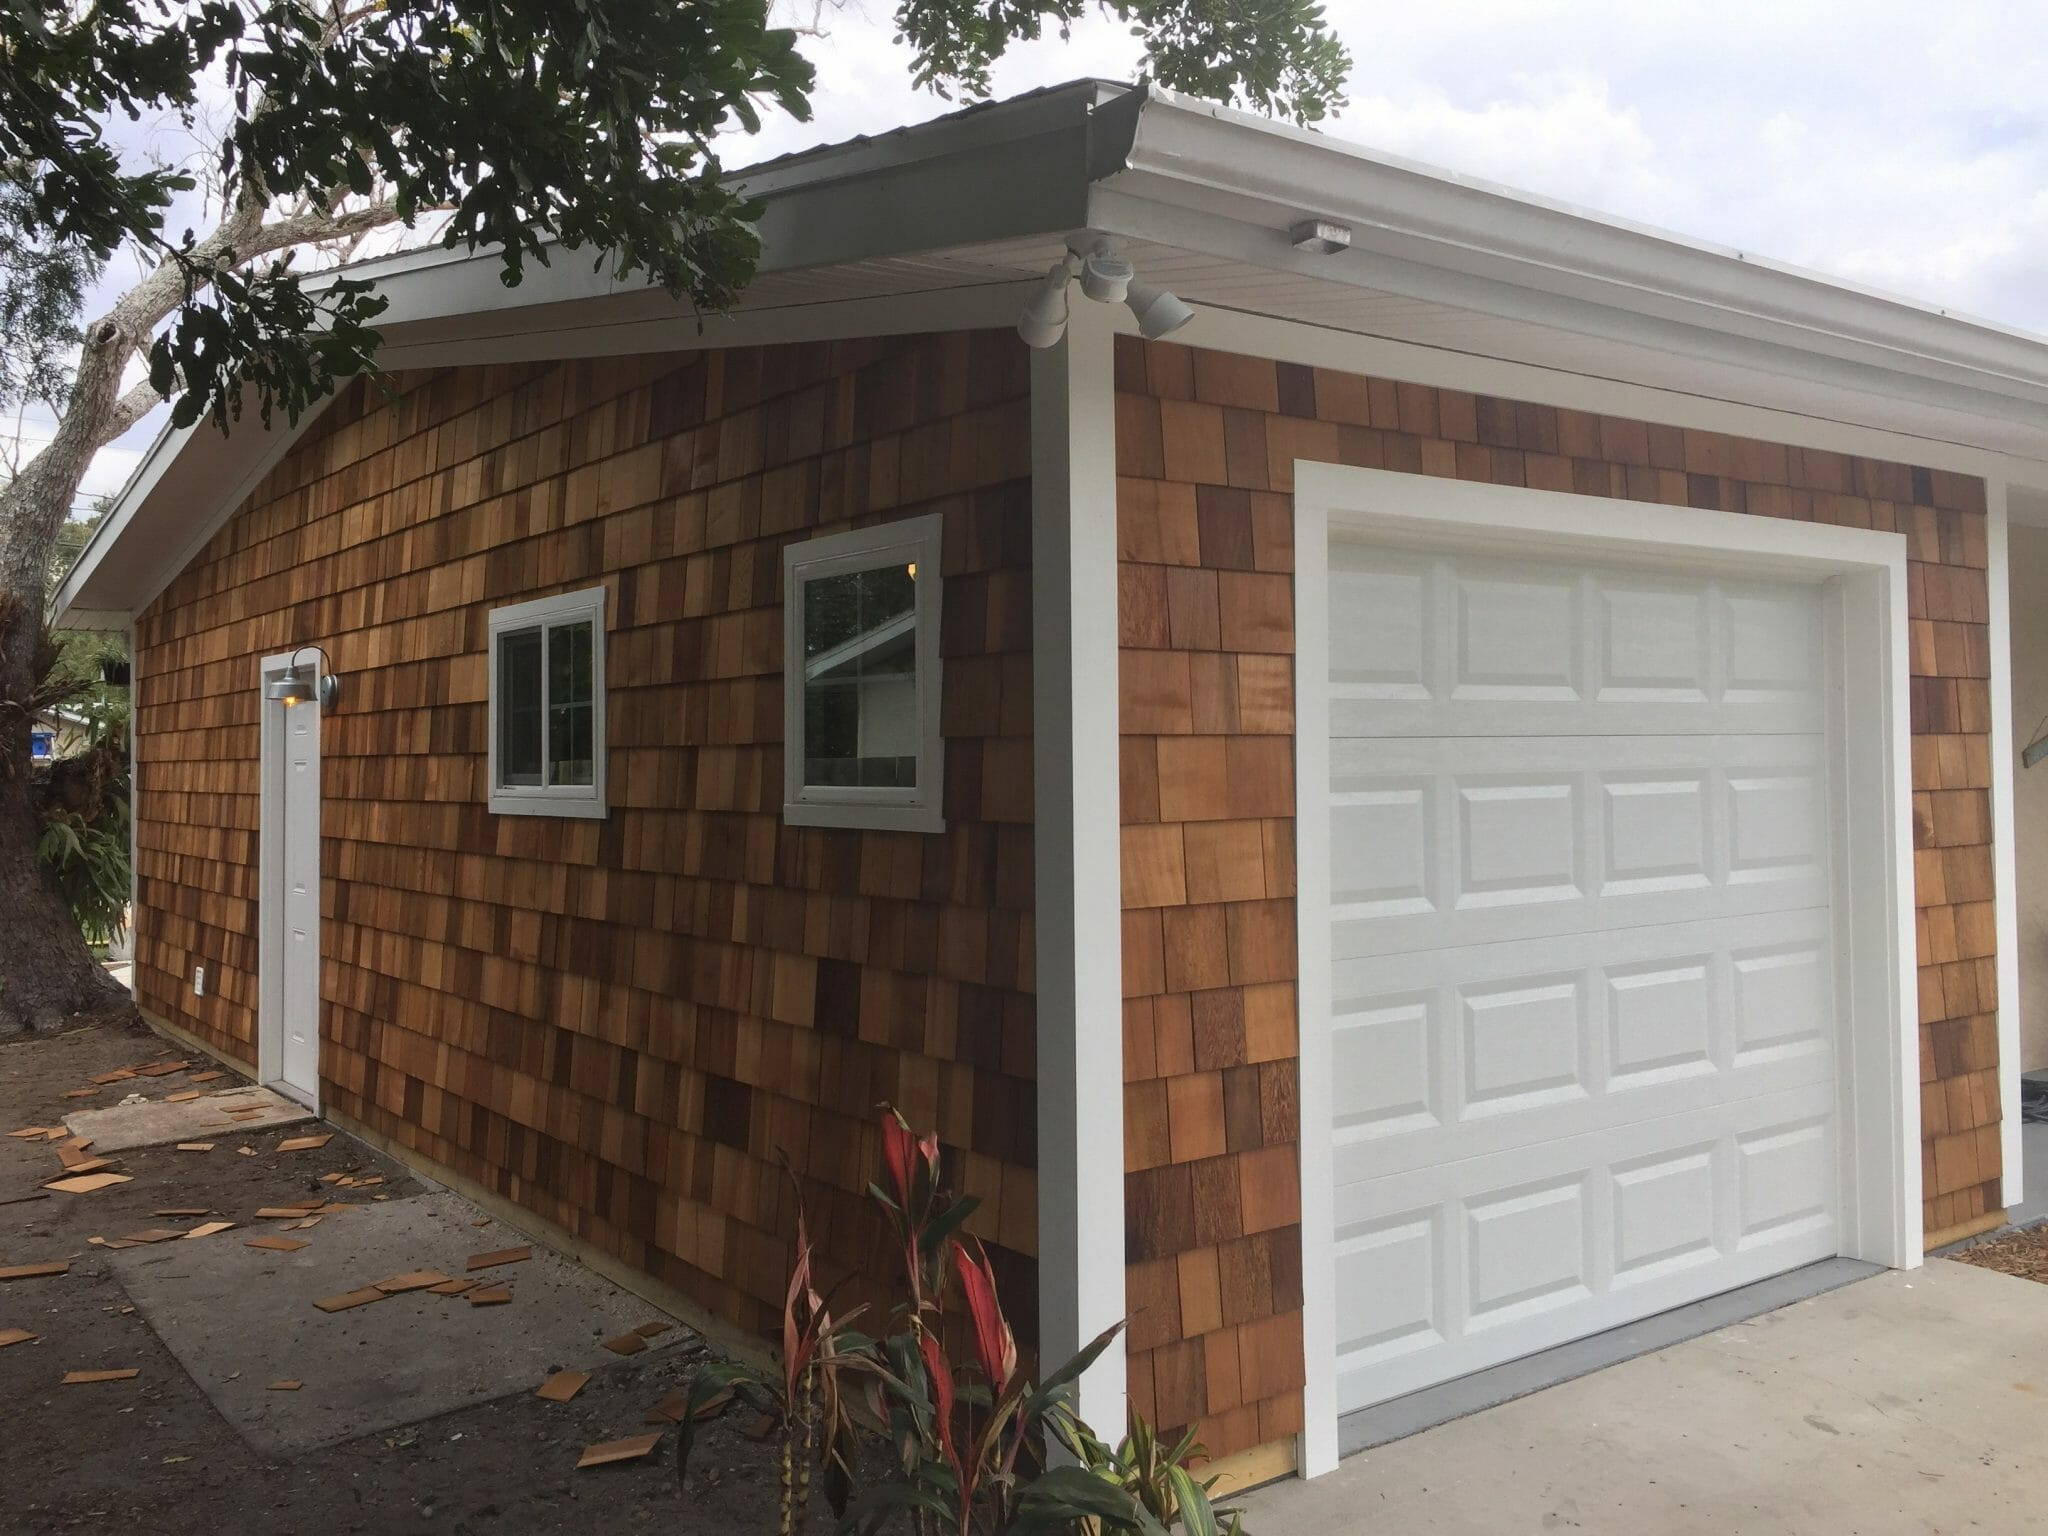 Western red cedar siding shingles direct and